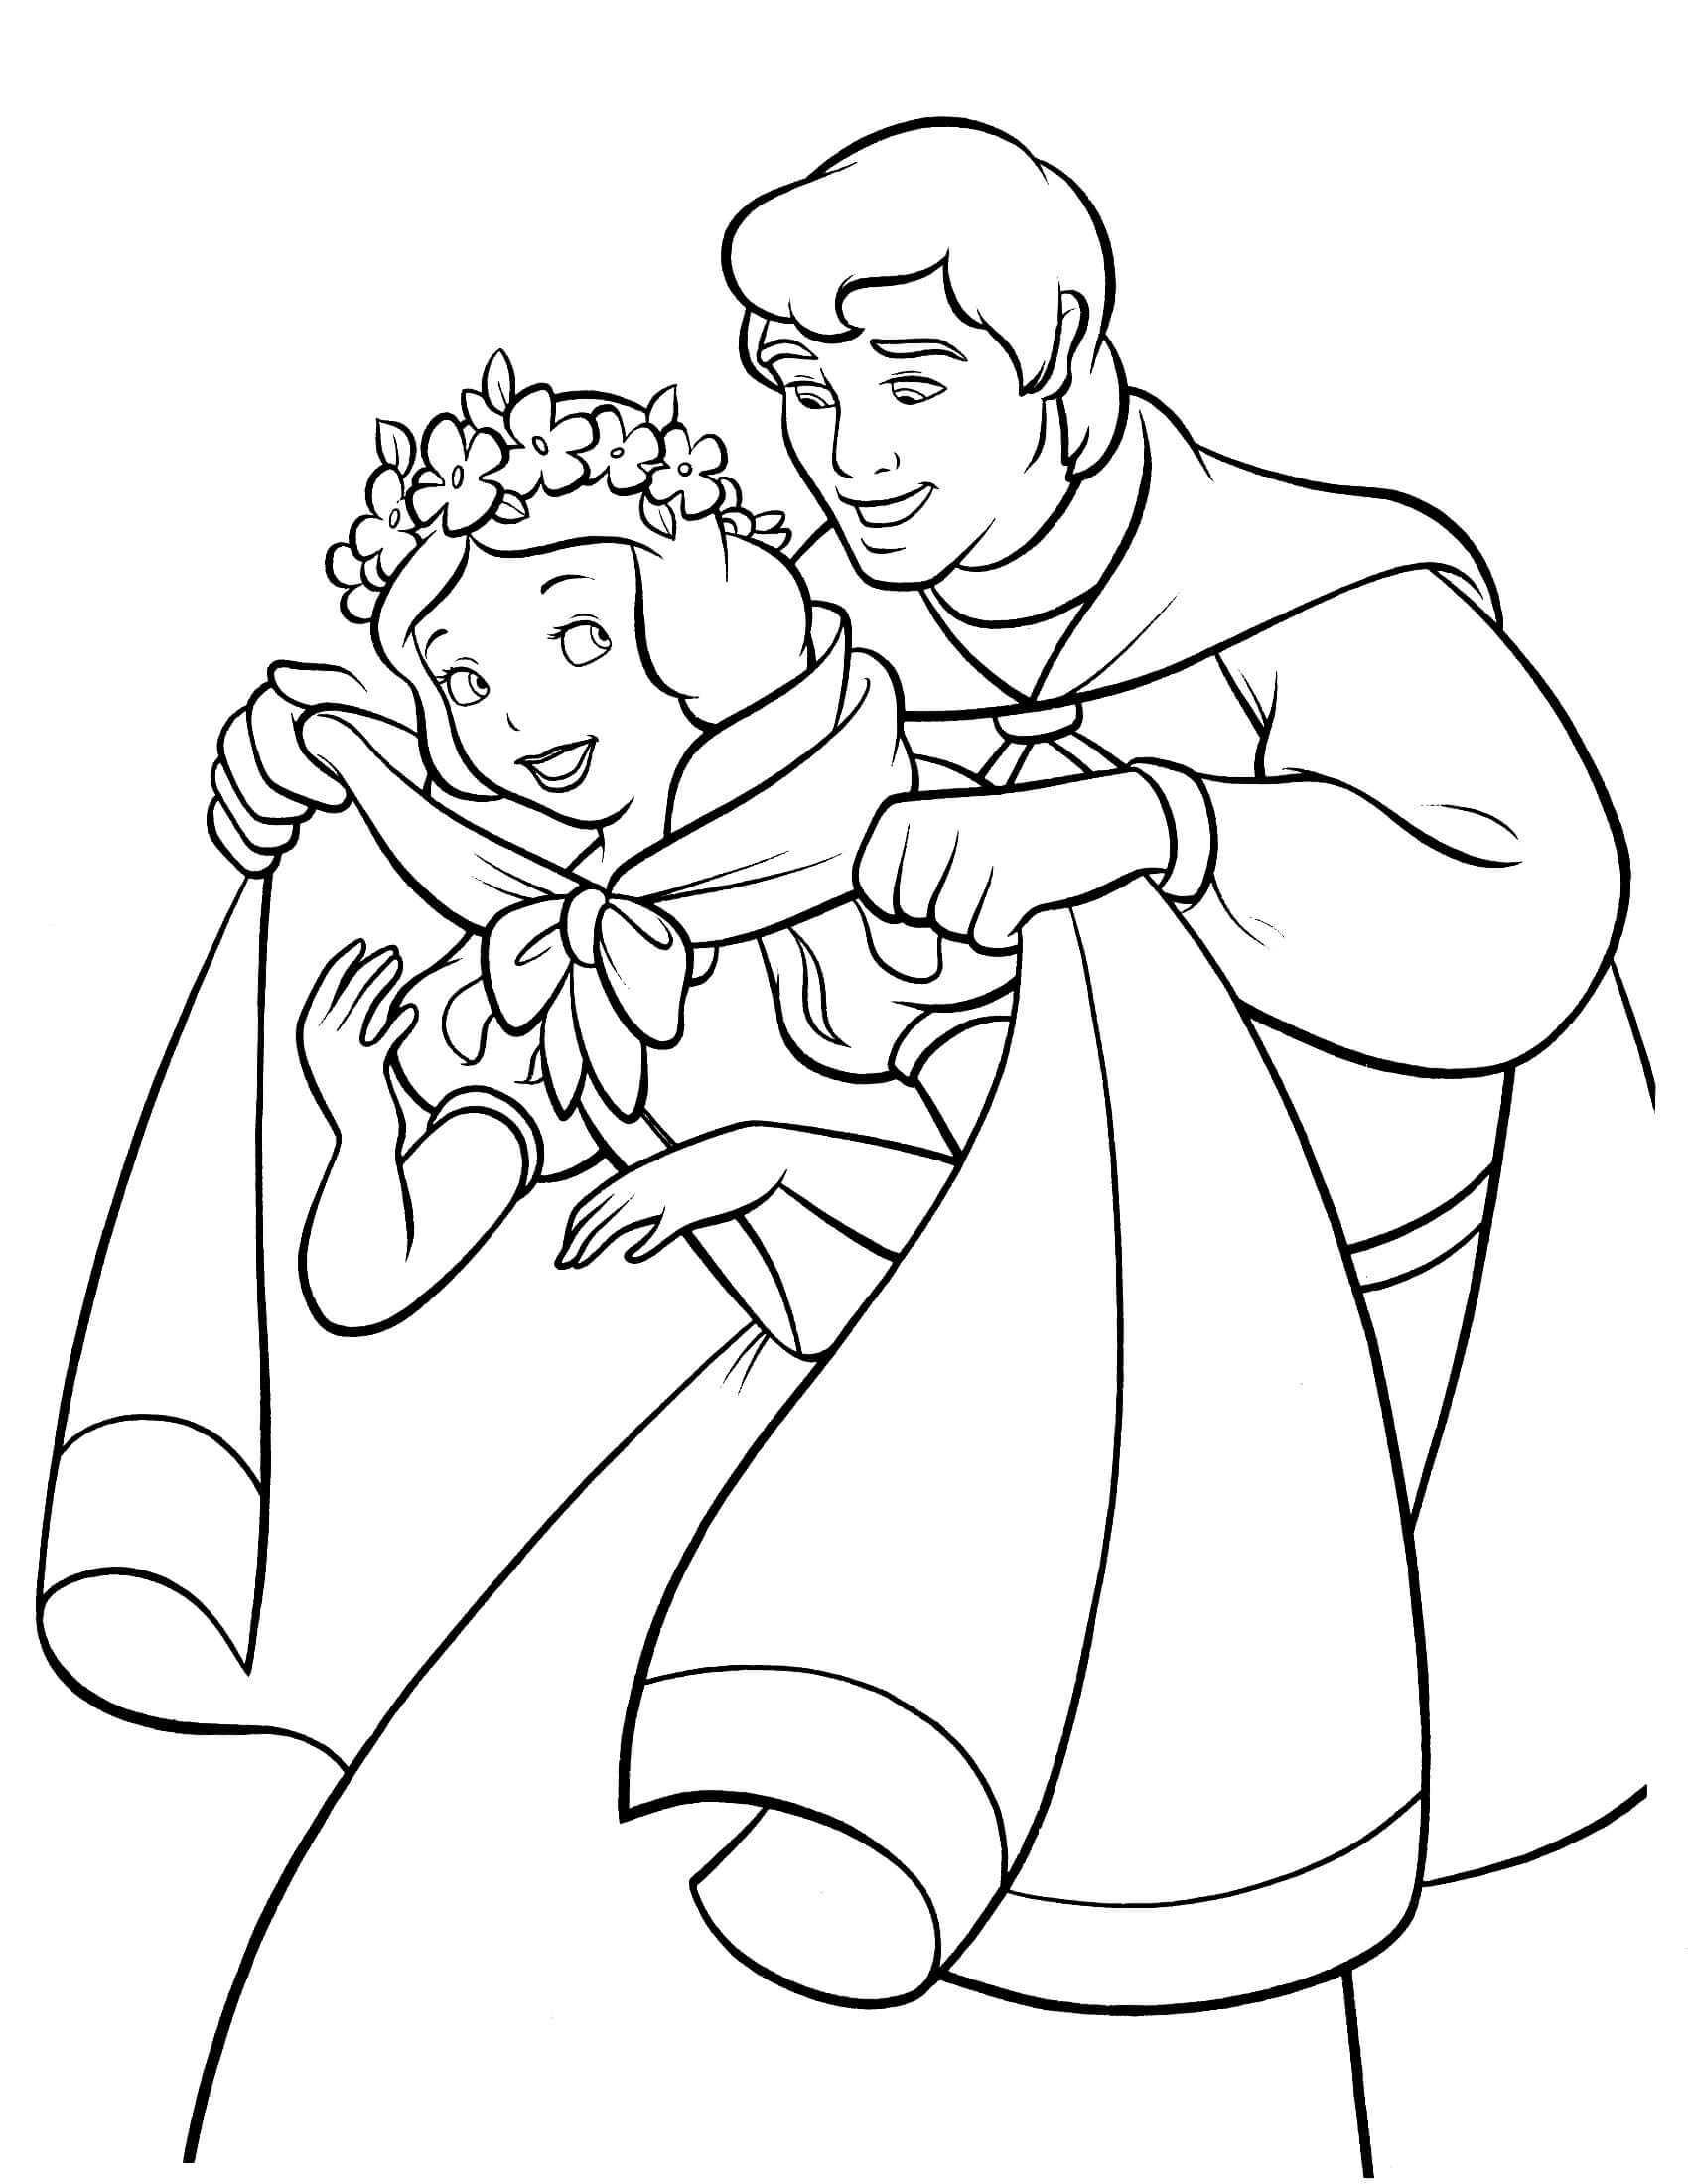 coloring picture of snow white snow white coloring pages minister coloring snow white picture of coloring